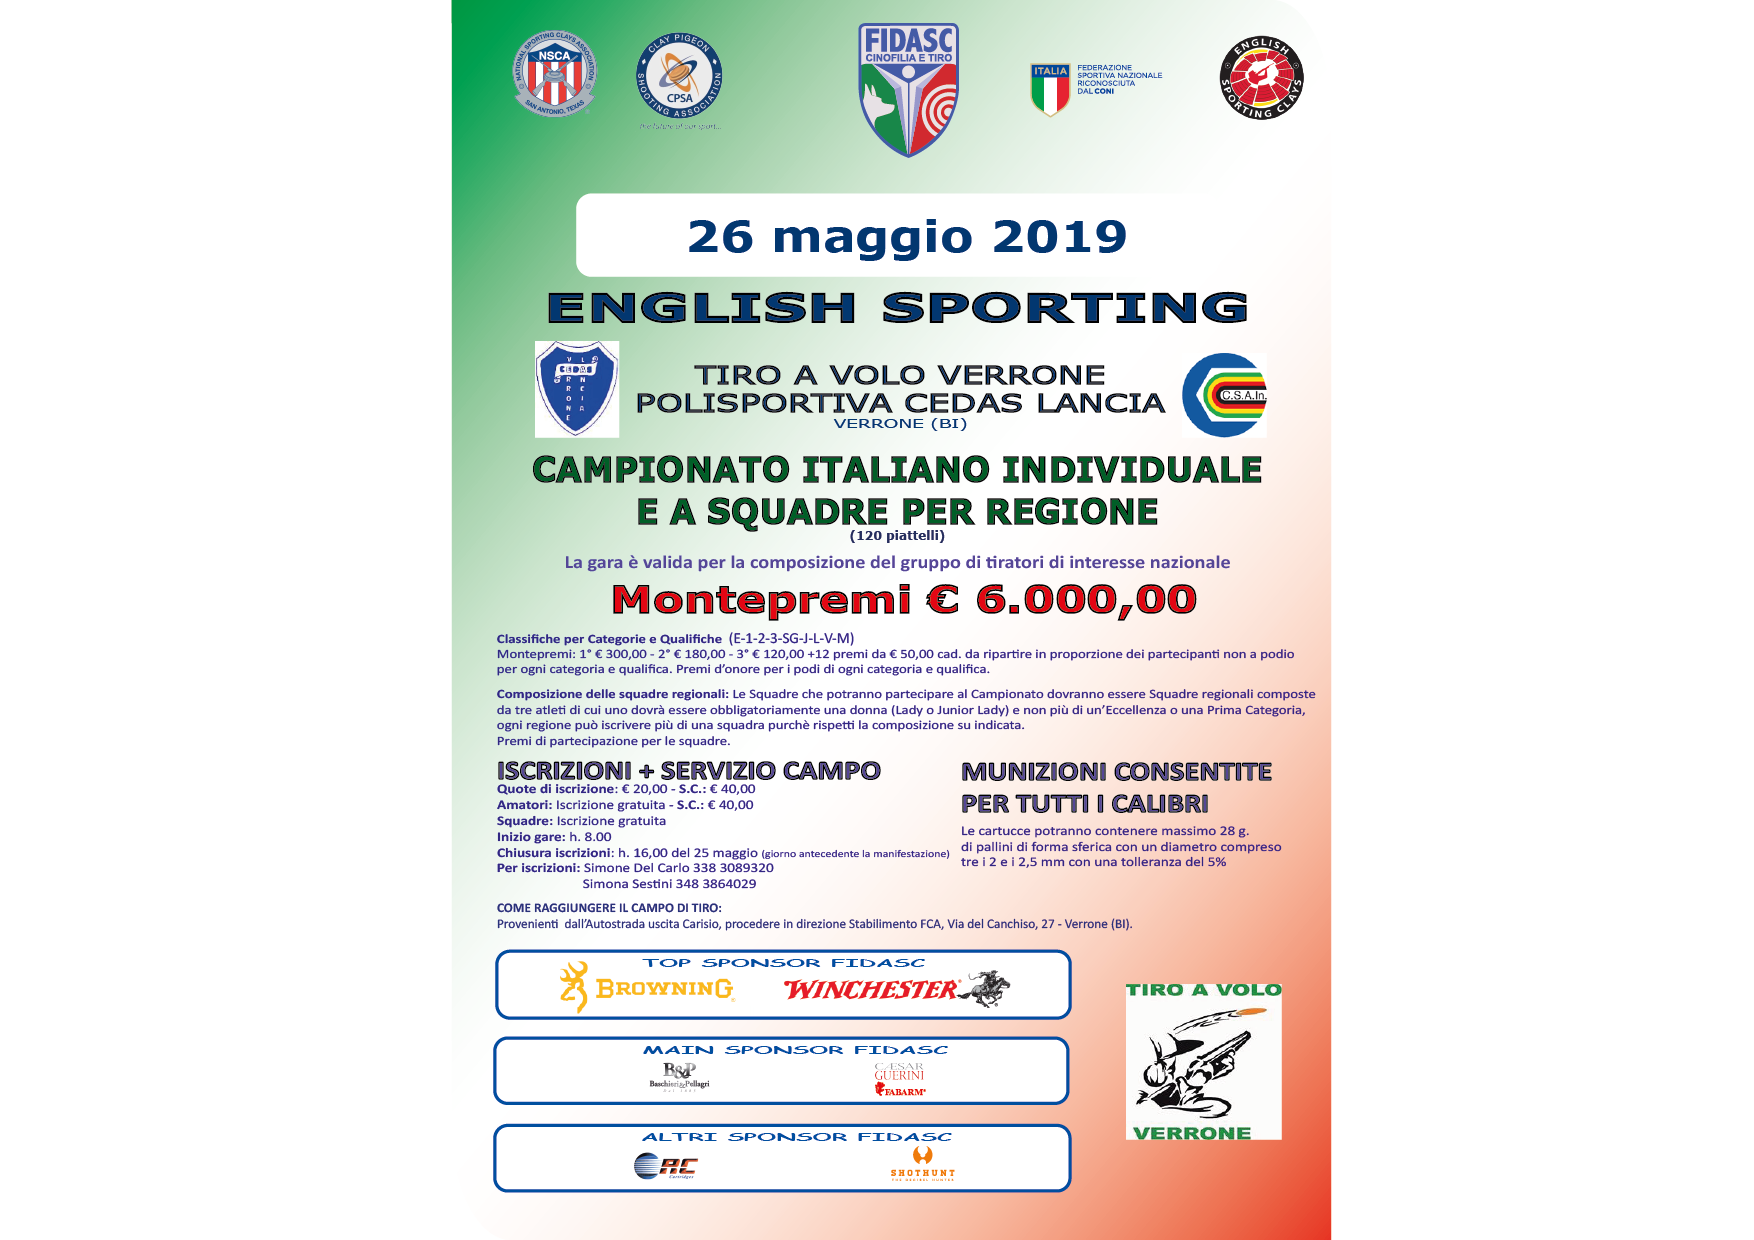 ENGLISH SPORTING - Campionato Italiano individuale e a squadre per Regione